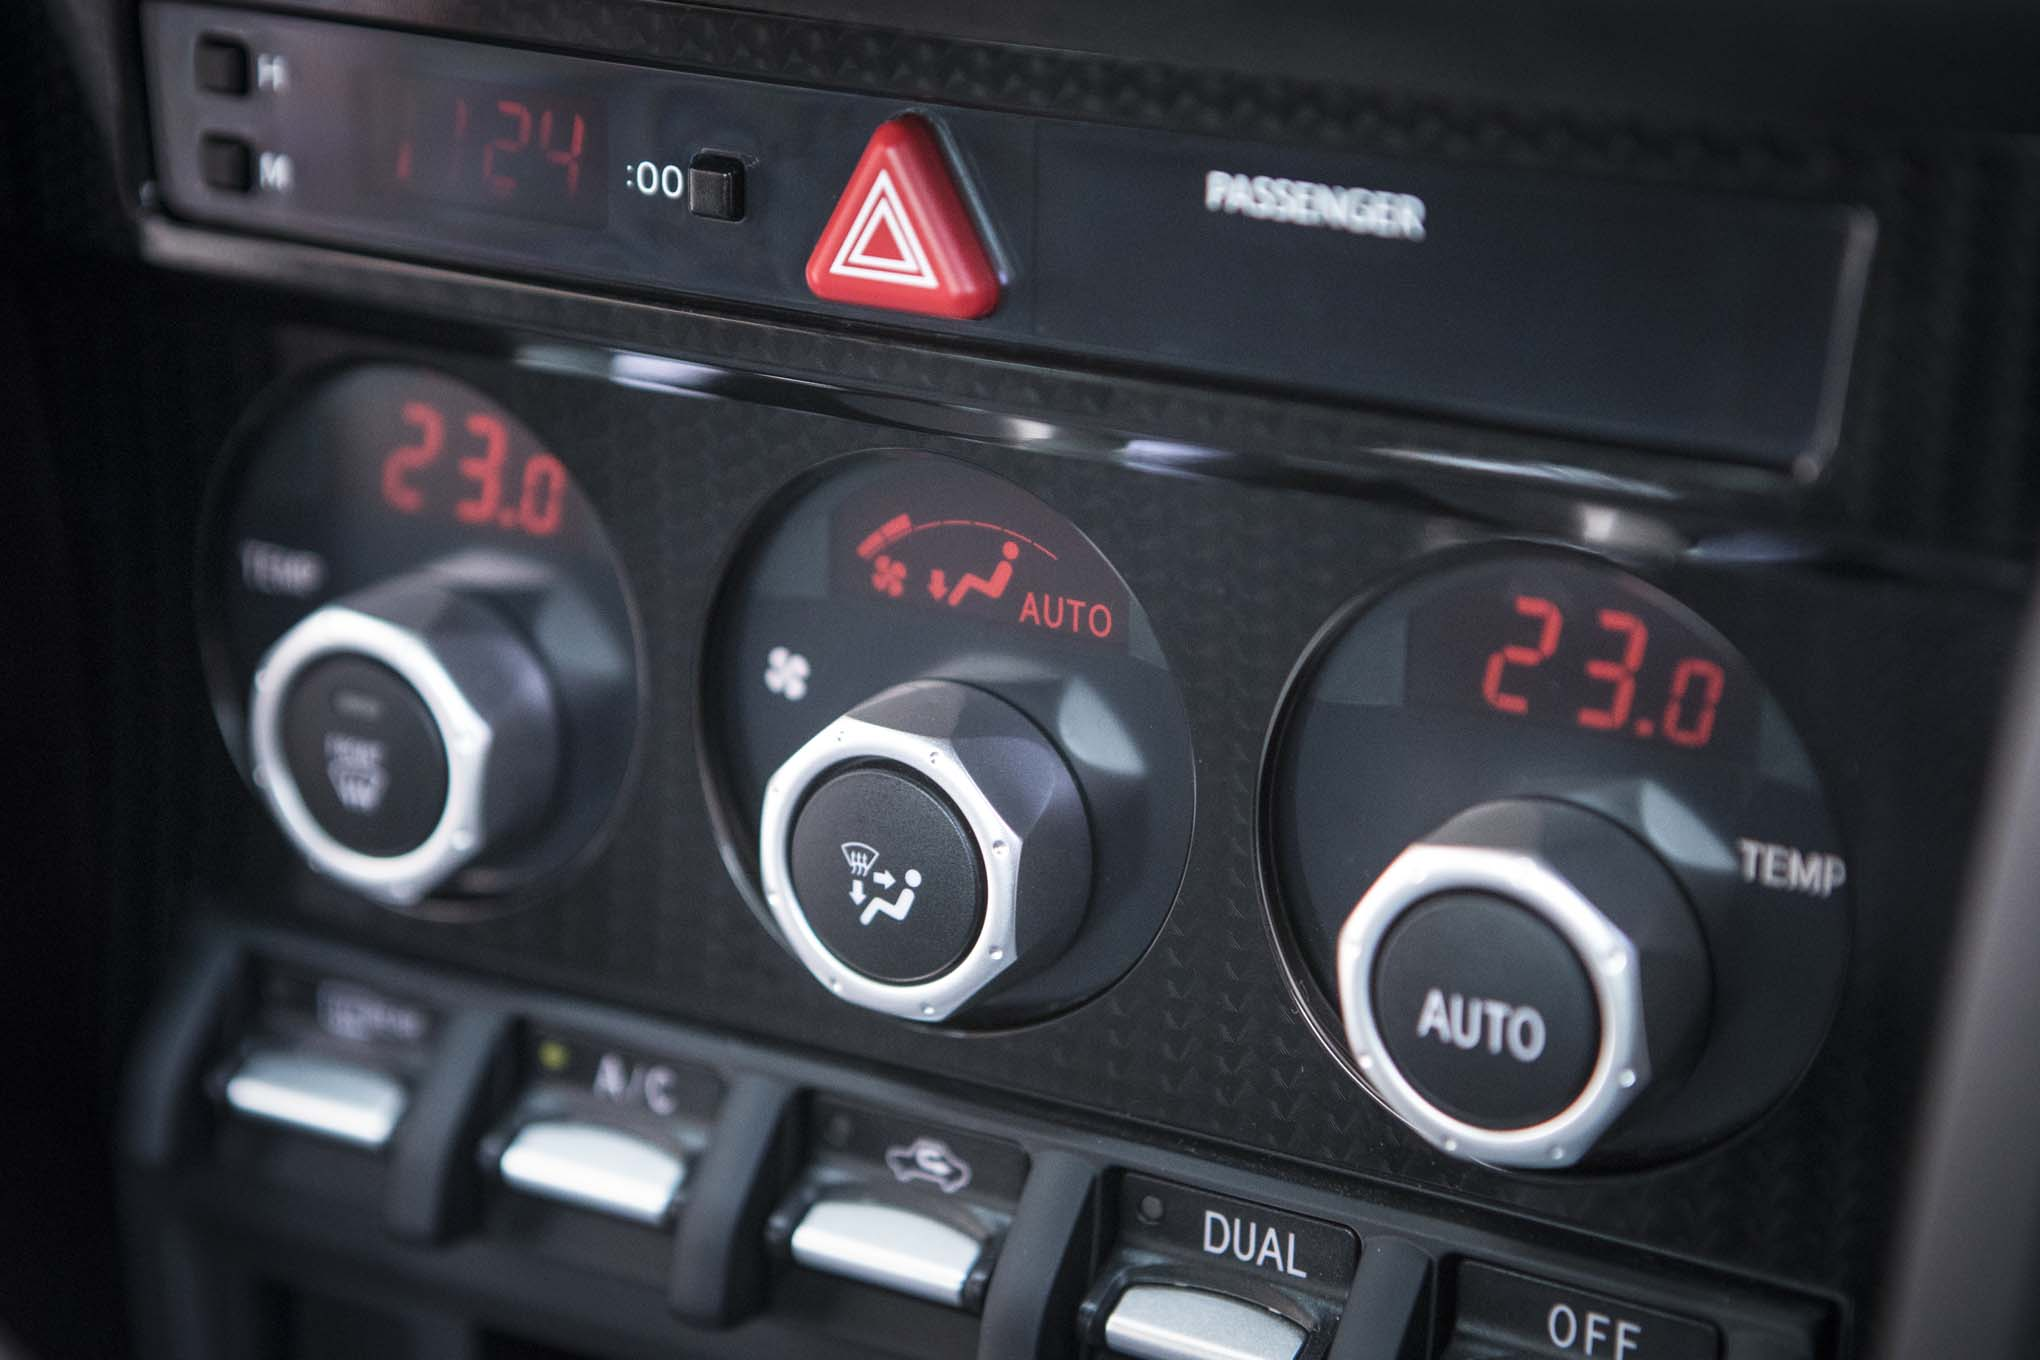 2017 Toyota 86 860 Special Edition climate controls